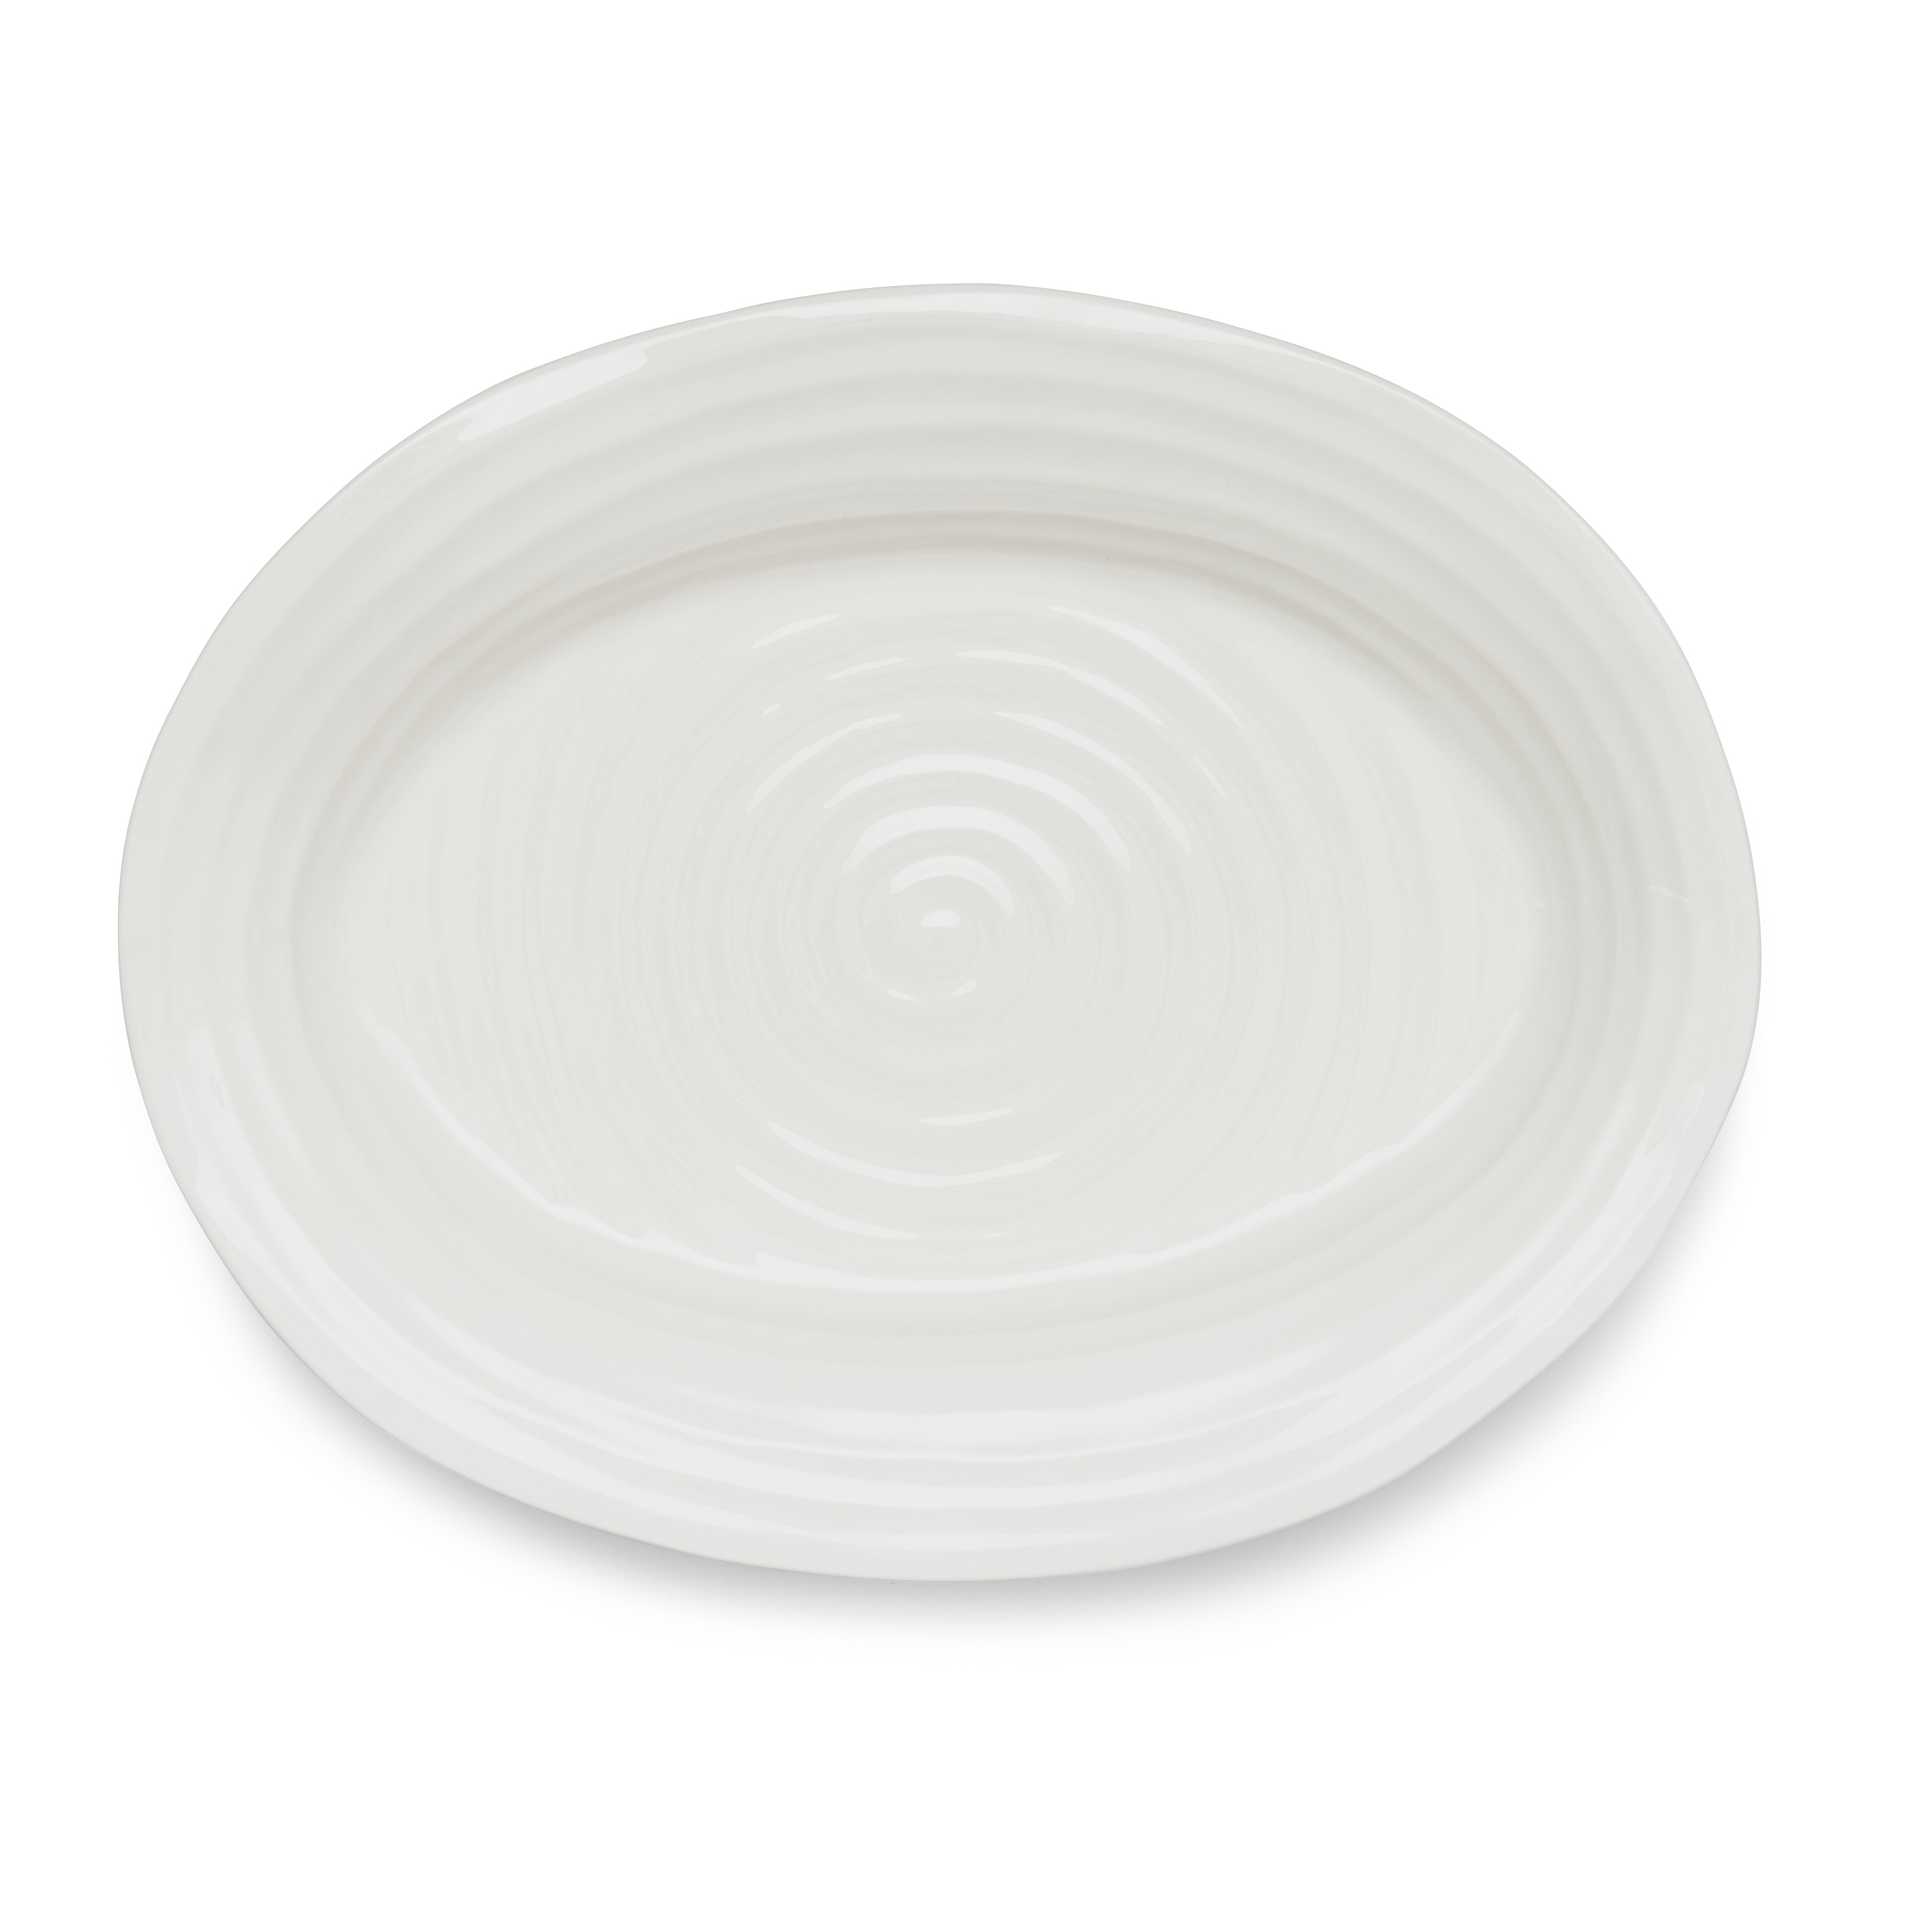 Portmeirion Sophie Conran White Medium Oval Platter image number 0